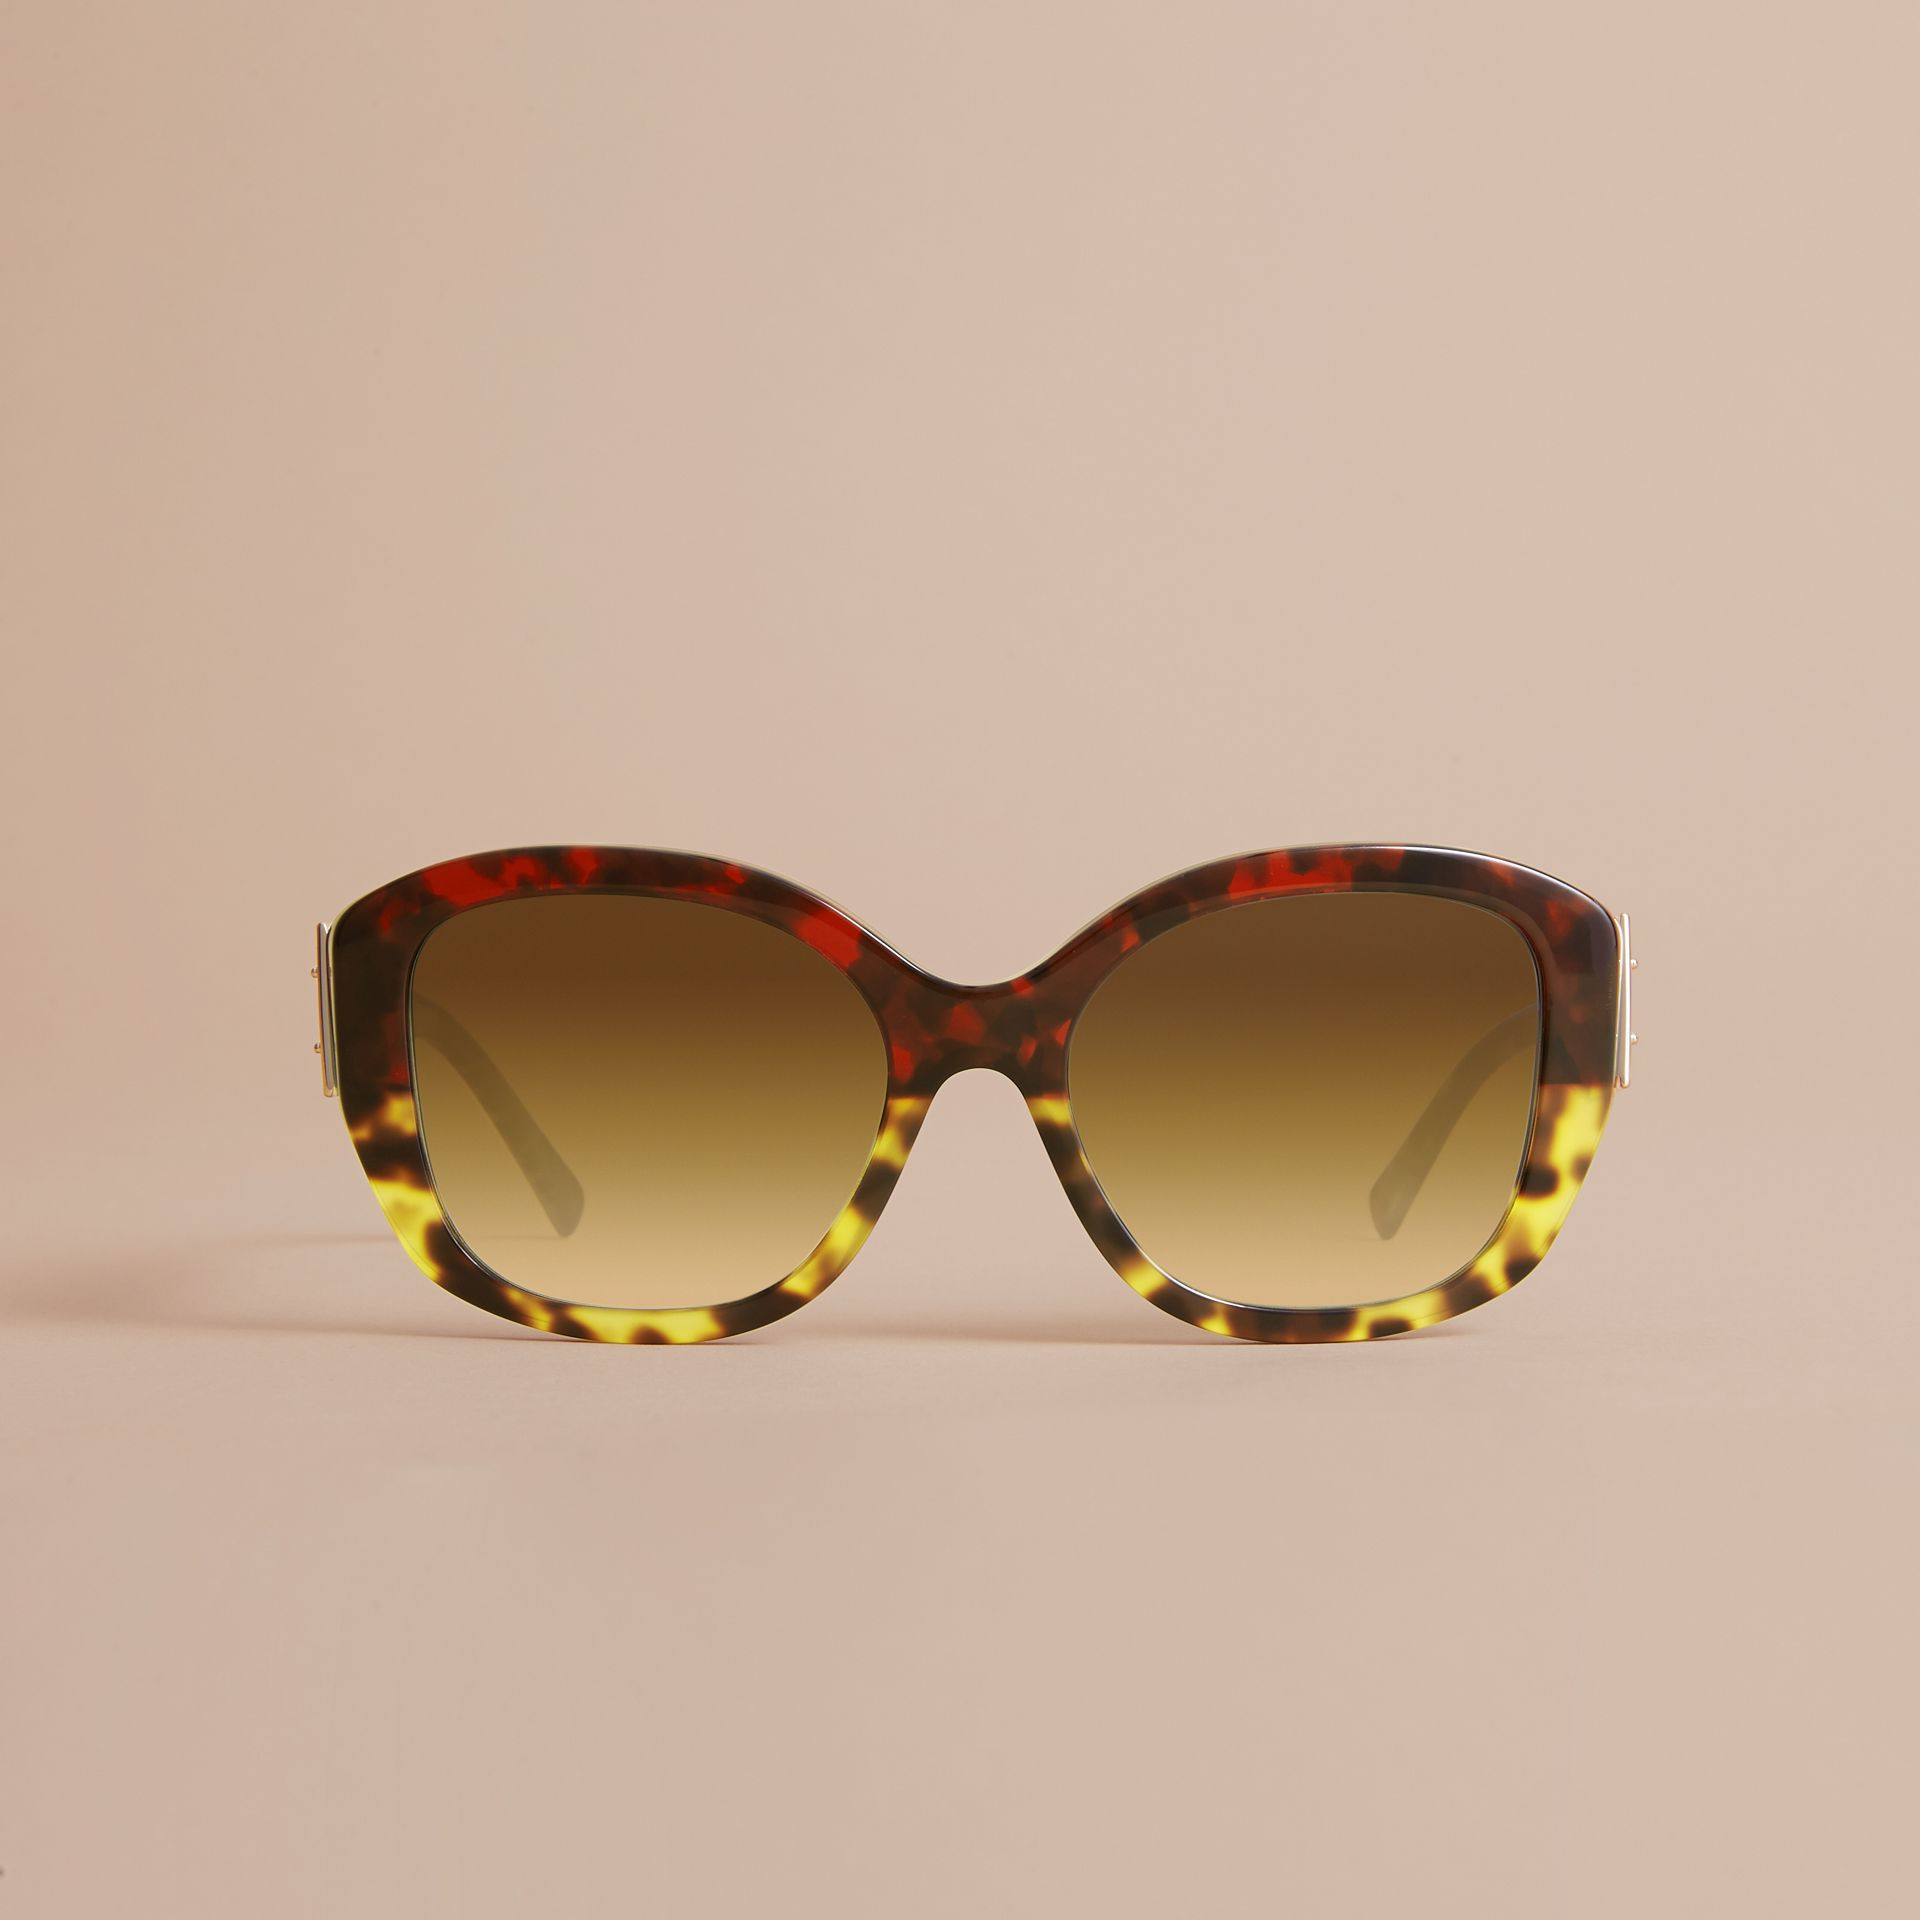 Buckle Detail Oversize Square Frame Sunglasses in Amber Yellow - Women | Burberry United Kingdom - gallery image 2